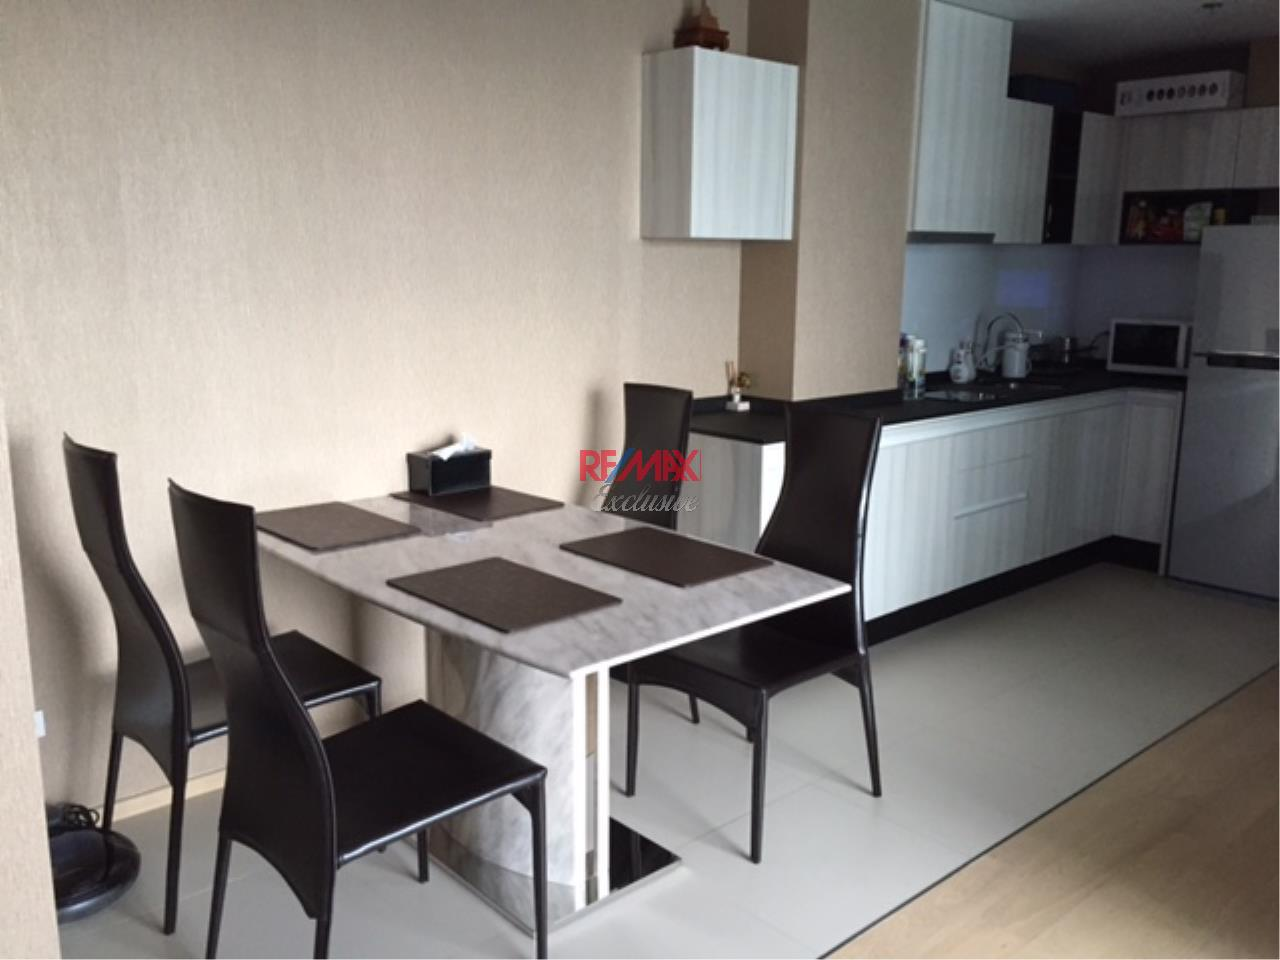 RE/MAX Exclusive Agency's HQ Thonglor., 2 Bedroom, 79 Sqm. Fully-Furnished, for RENT and SALE !!! 4